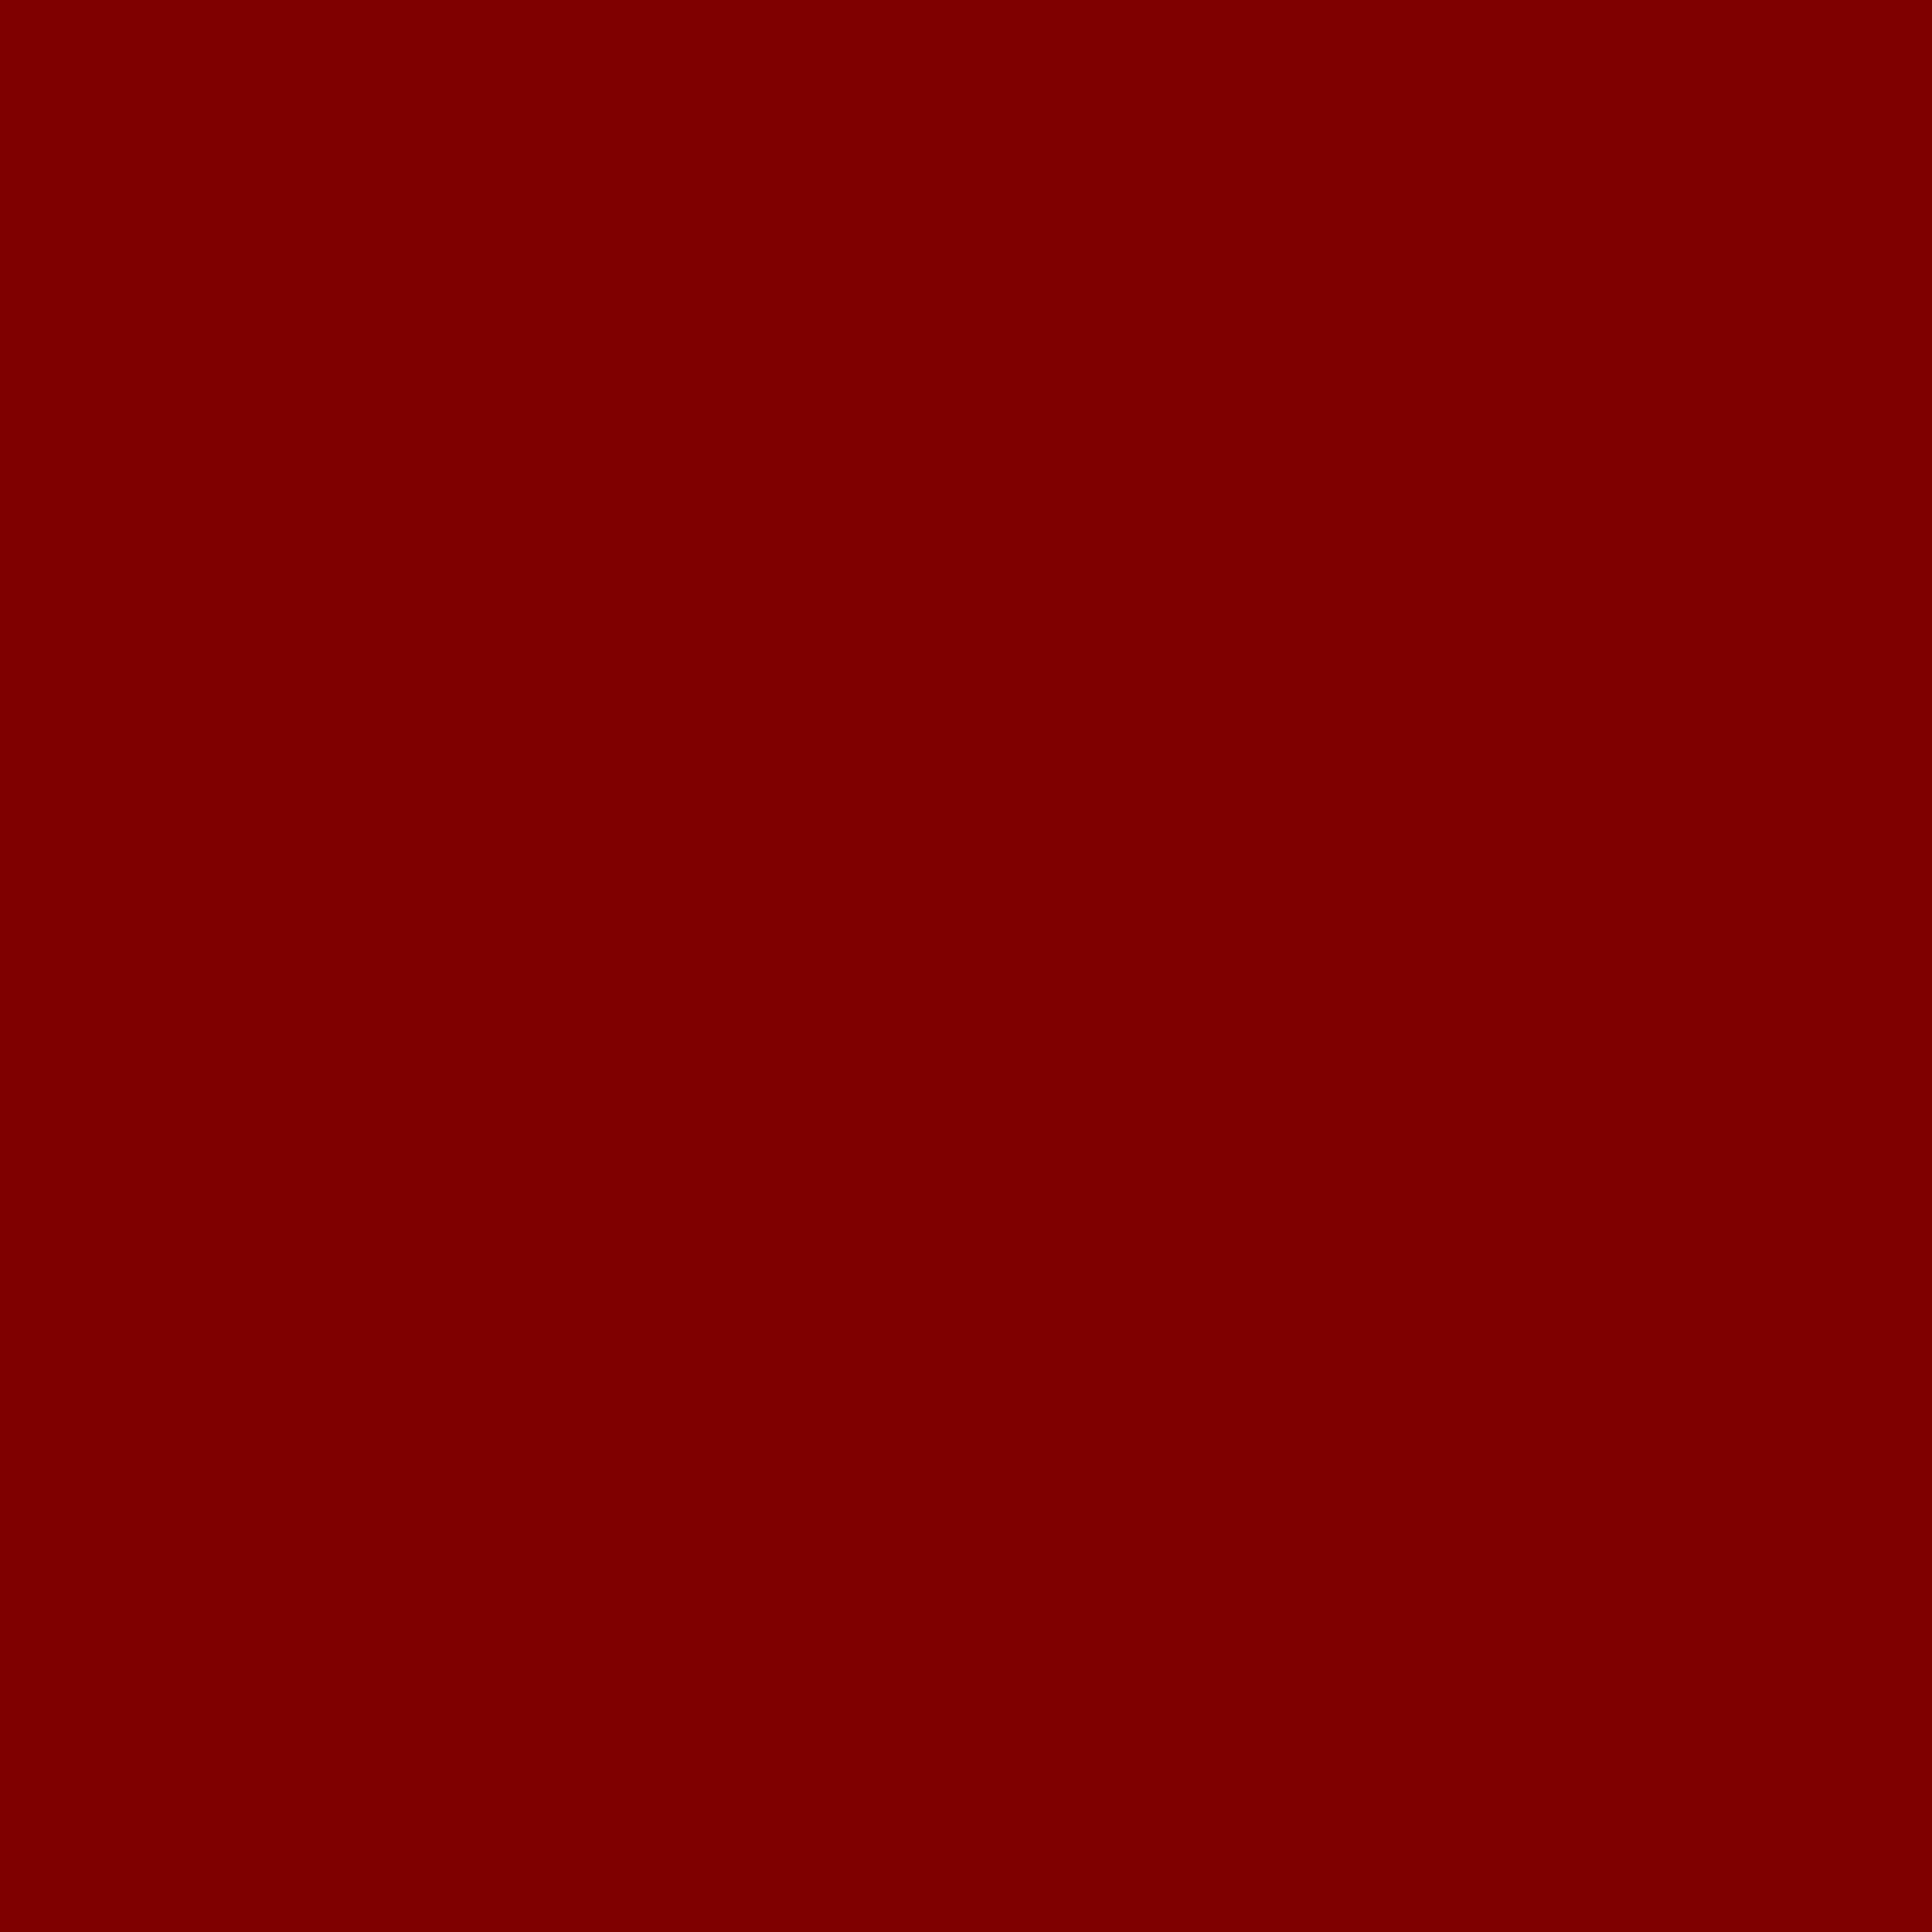 3600x3600 Maroon Web Solid Color Background